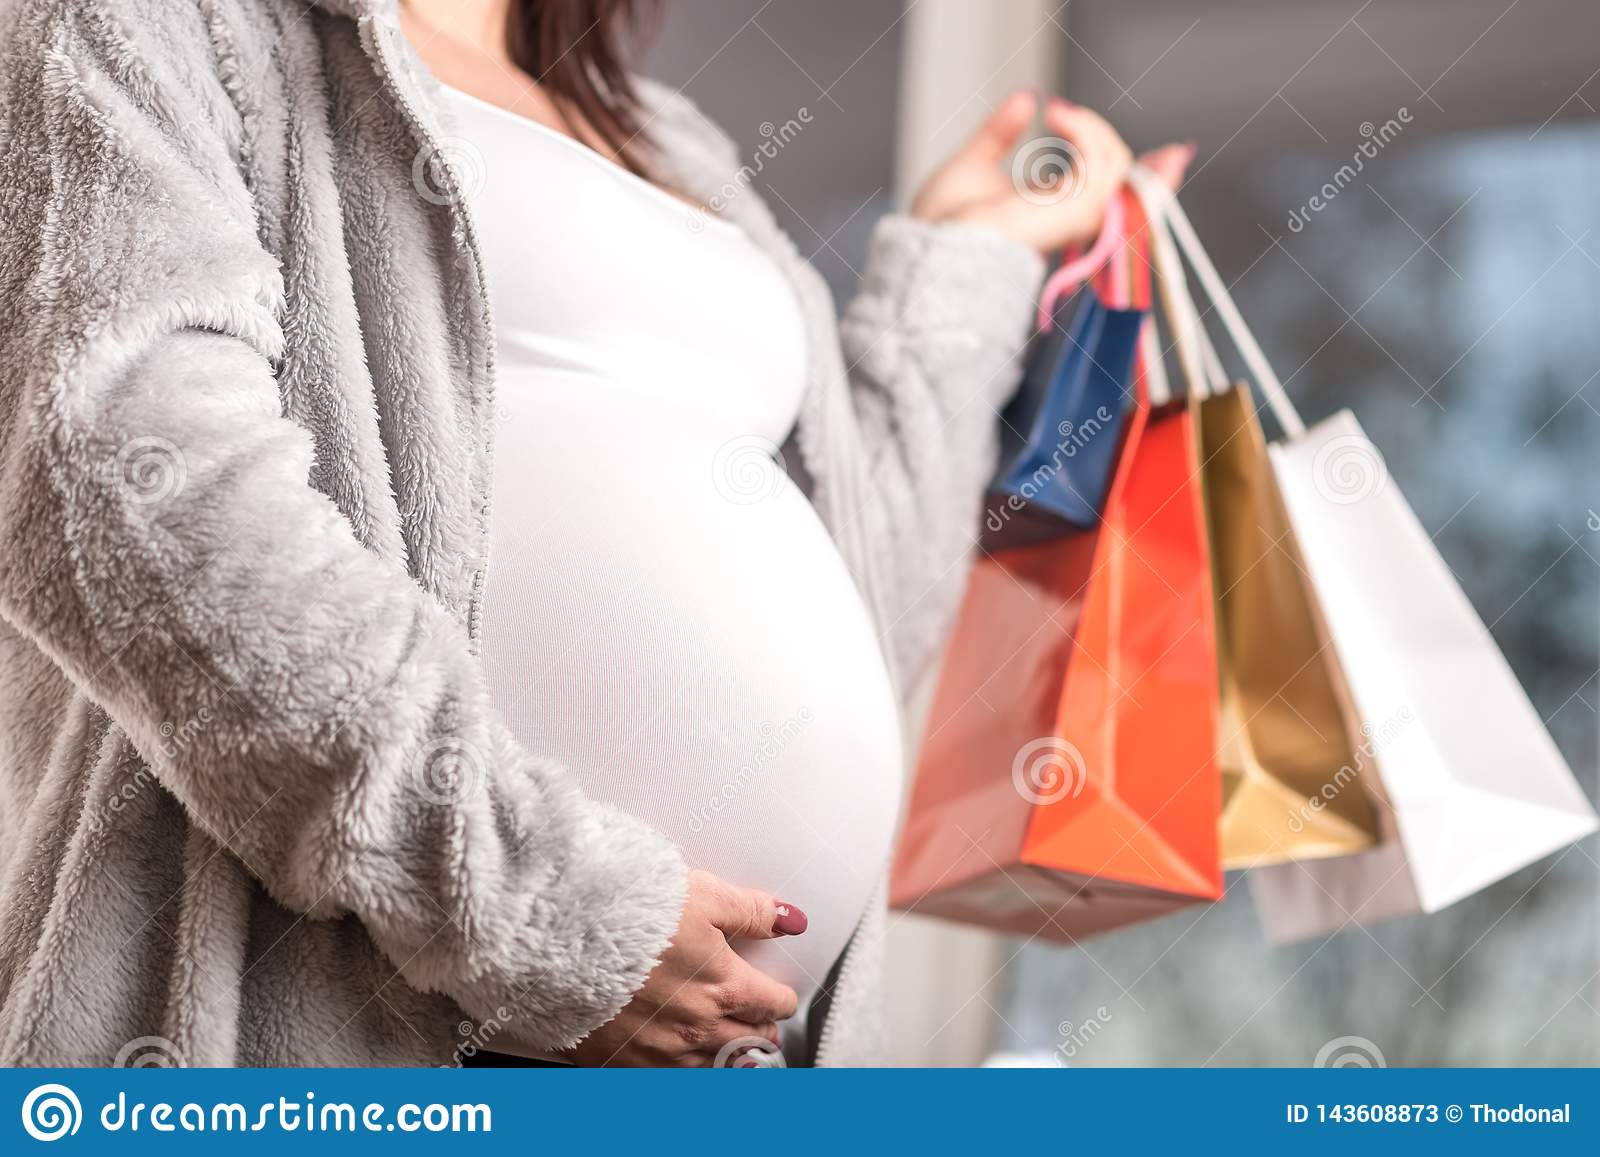 Pregnant woman with shopping bags touching her belly